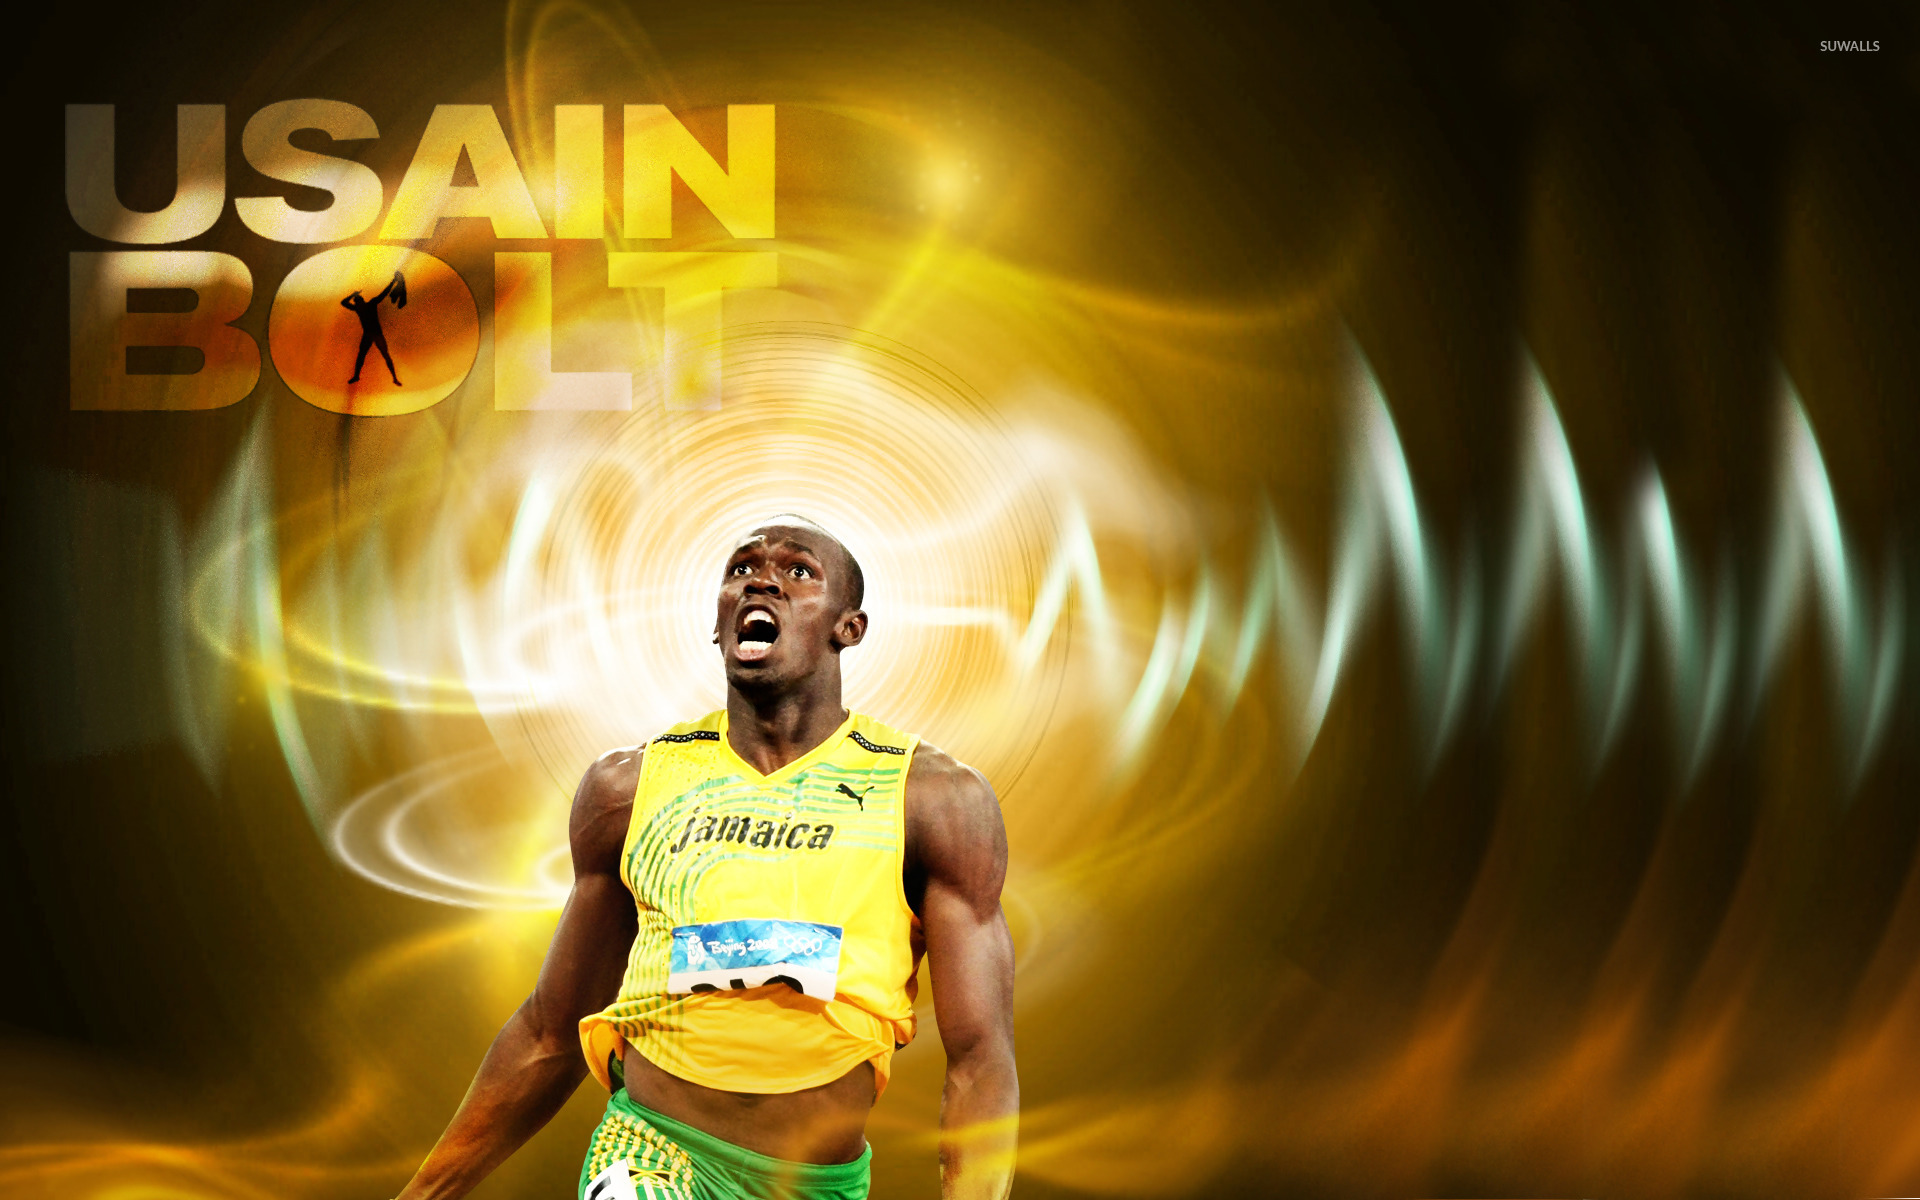 Usain Bolt 4 Wallpaper